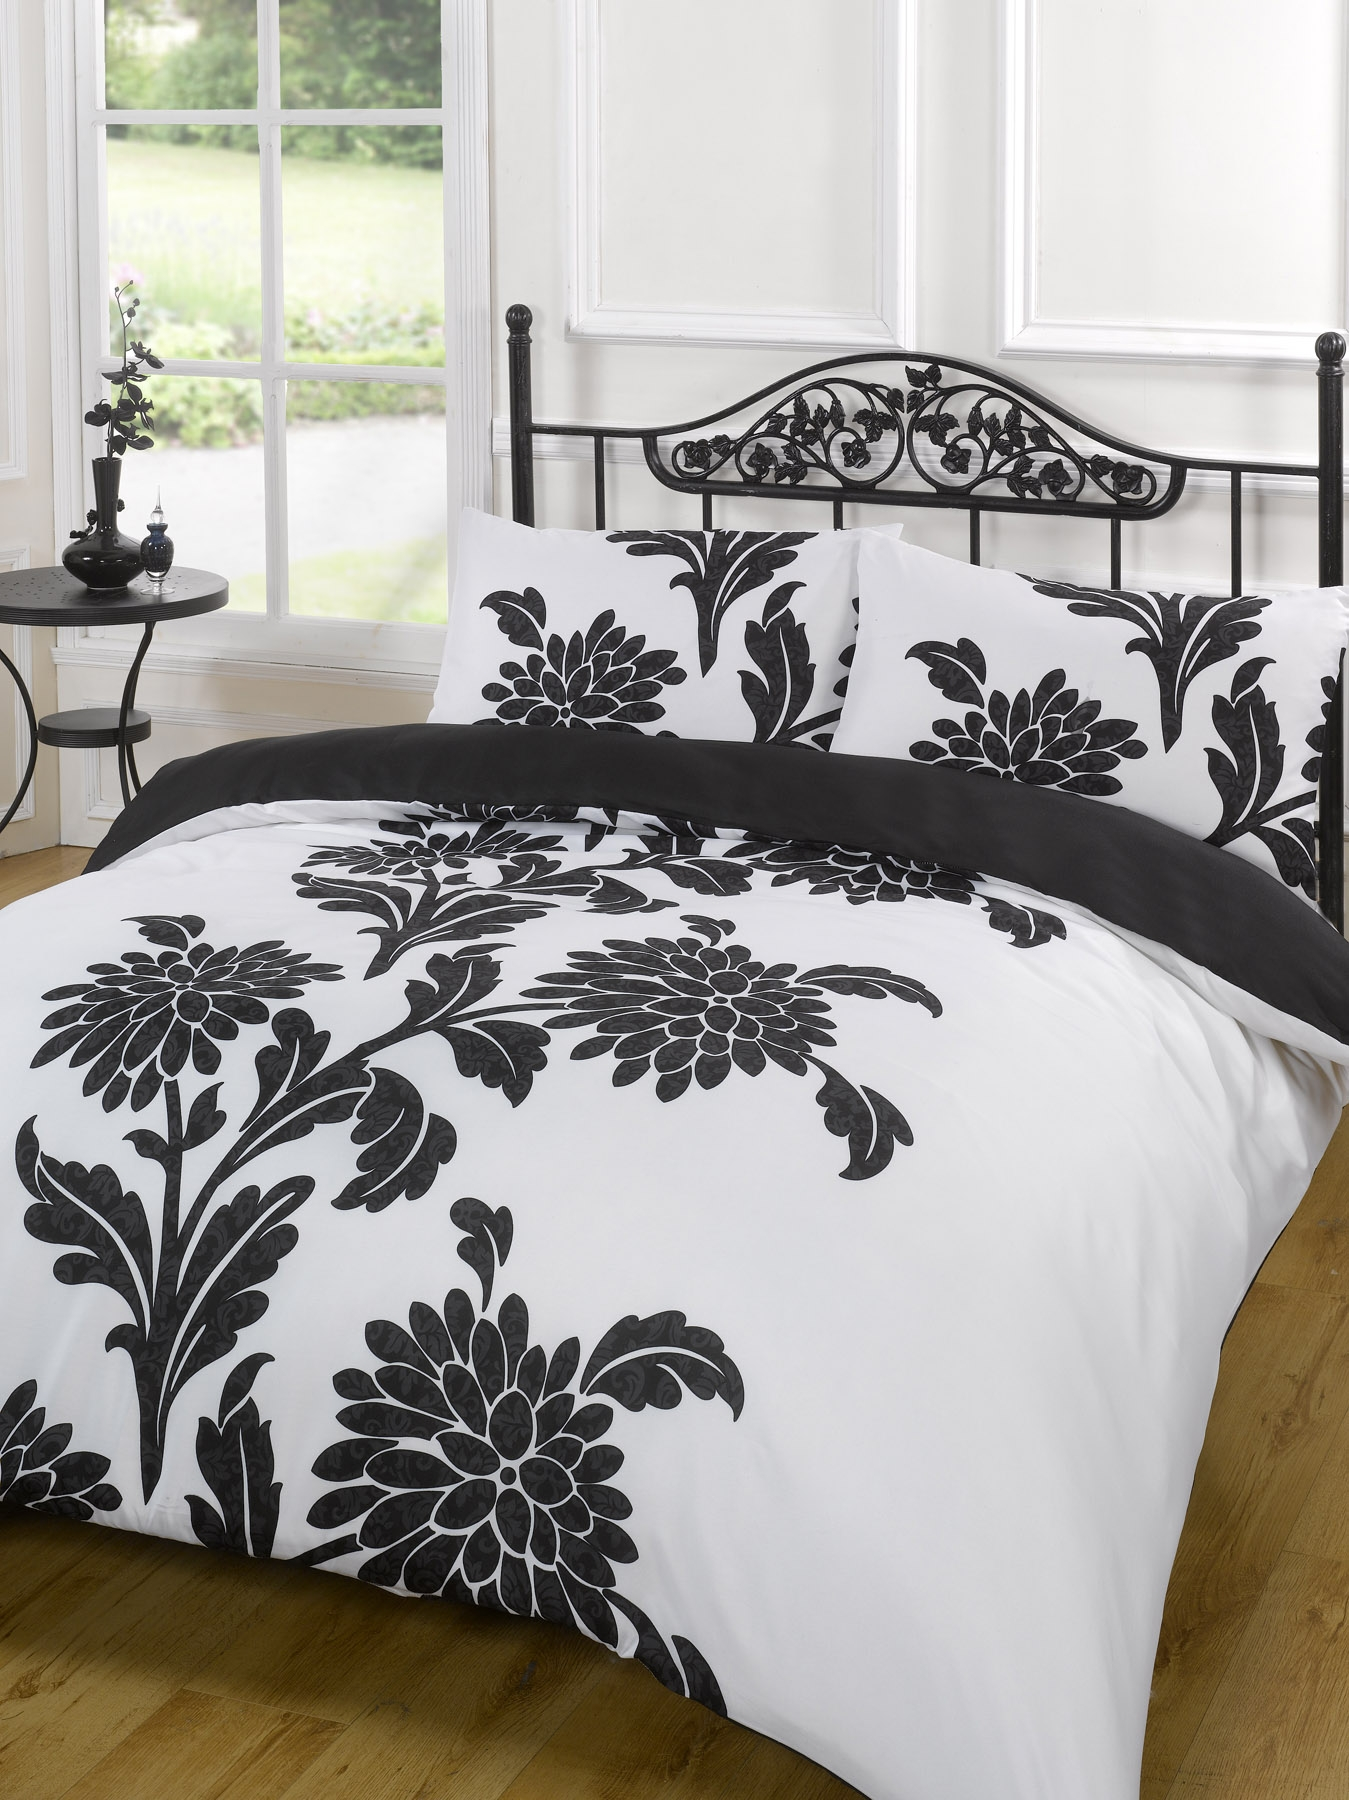 her quilt is inside used double couples filling our side linen his sets black bed bedding white item and to it cover comforter or duvet without